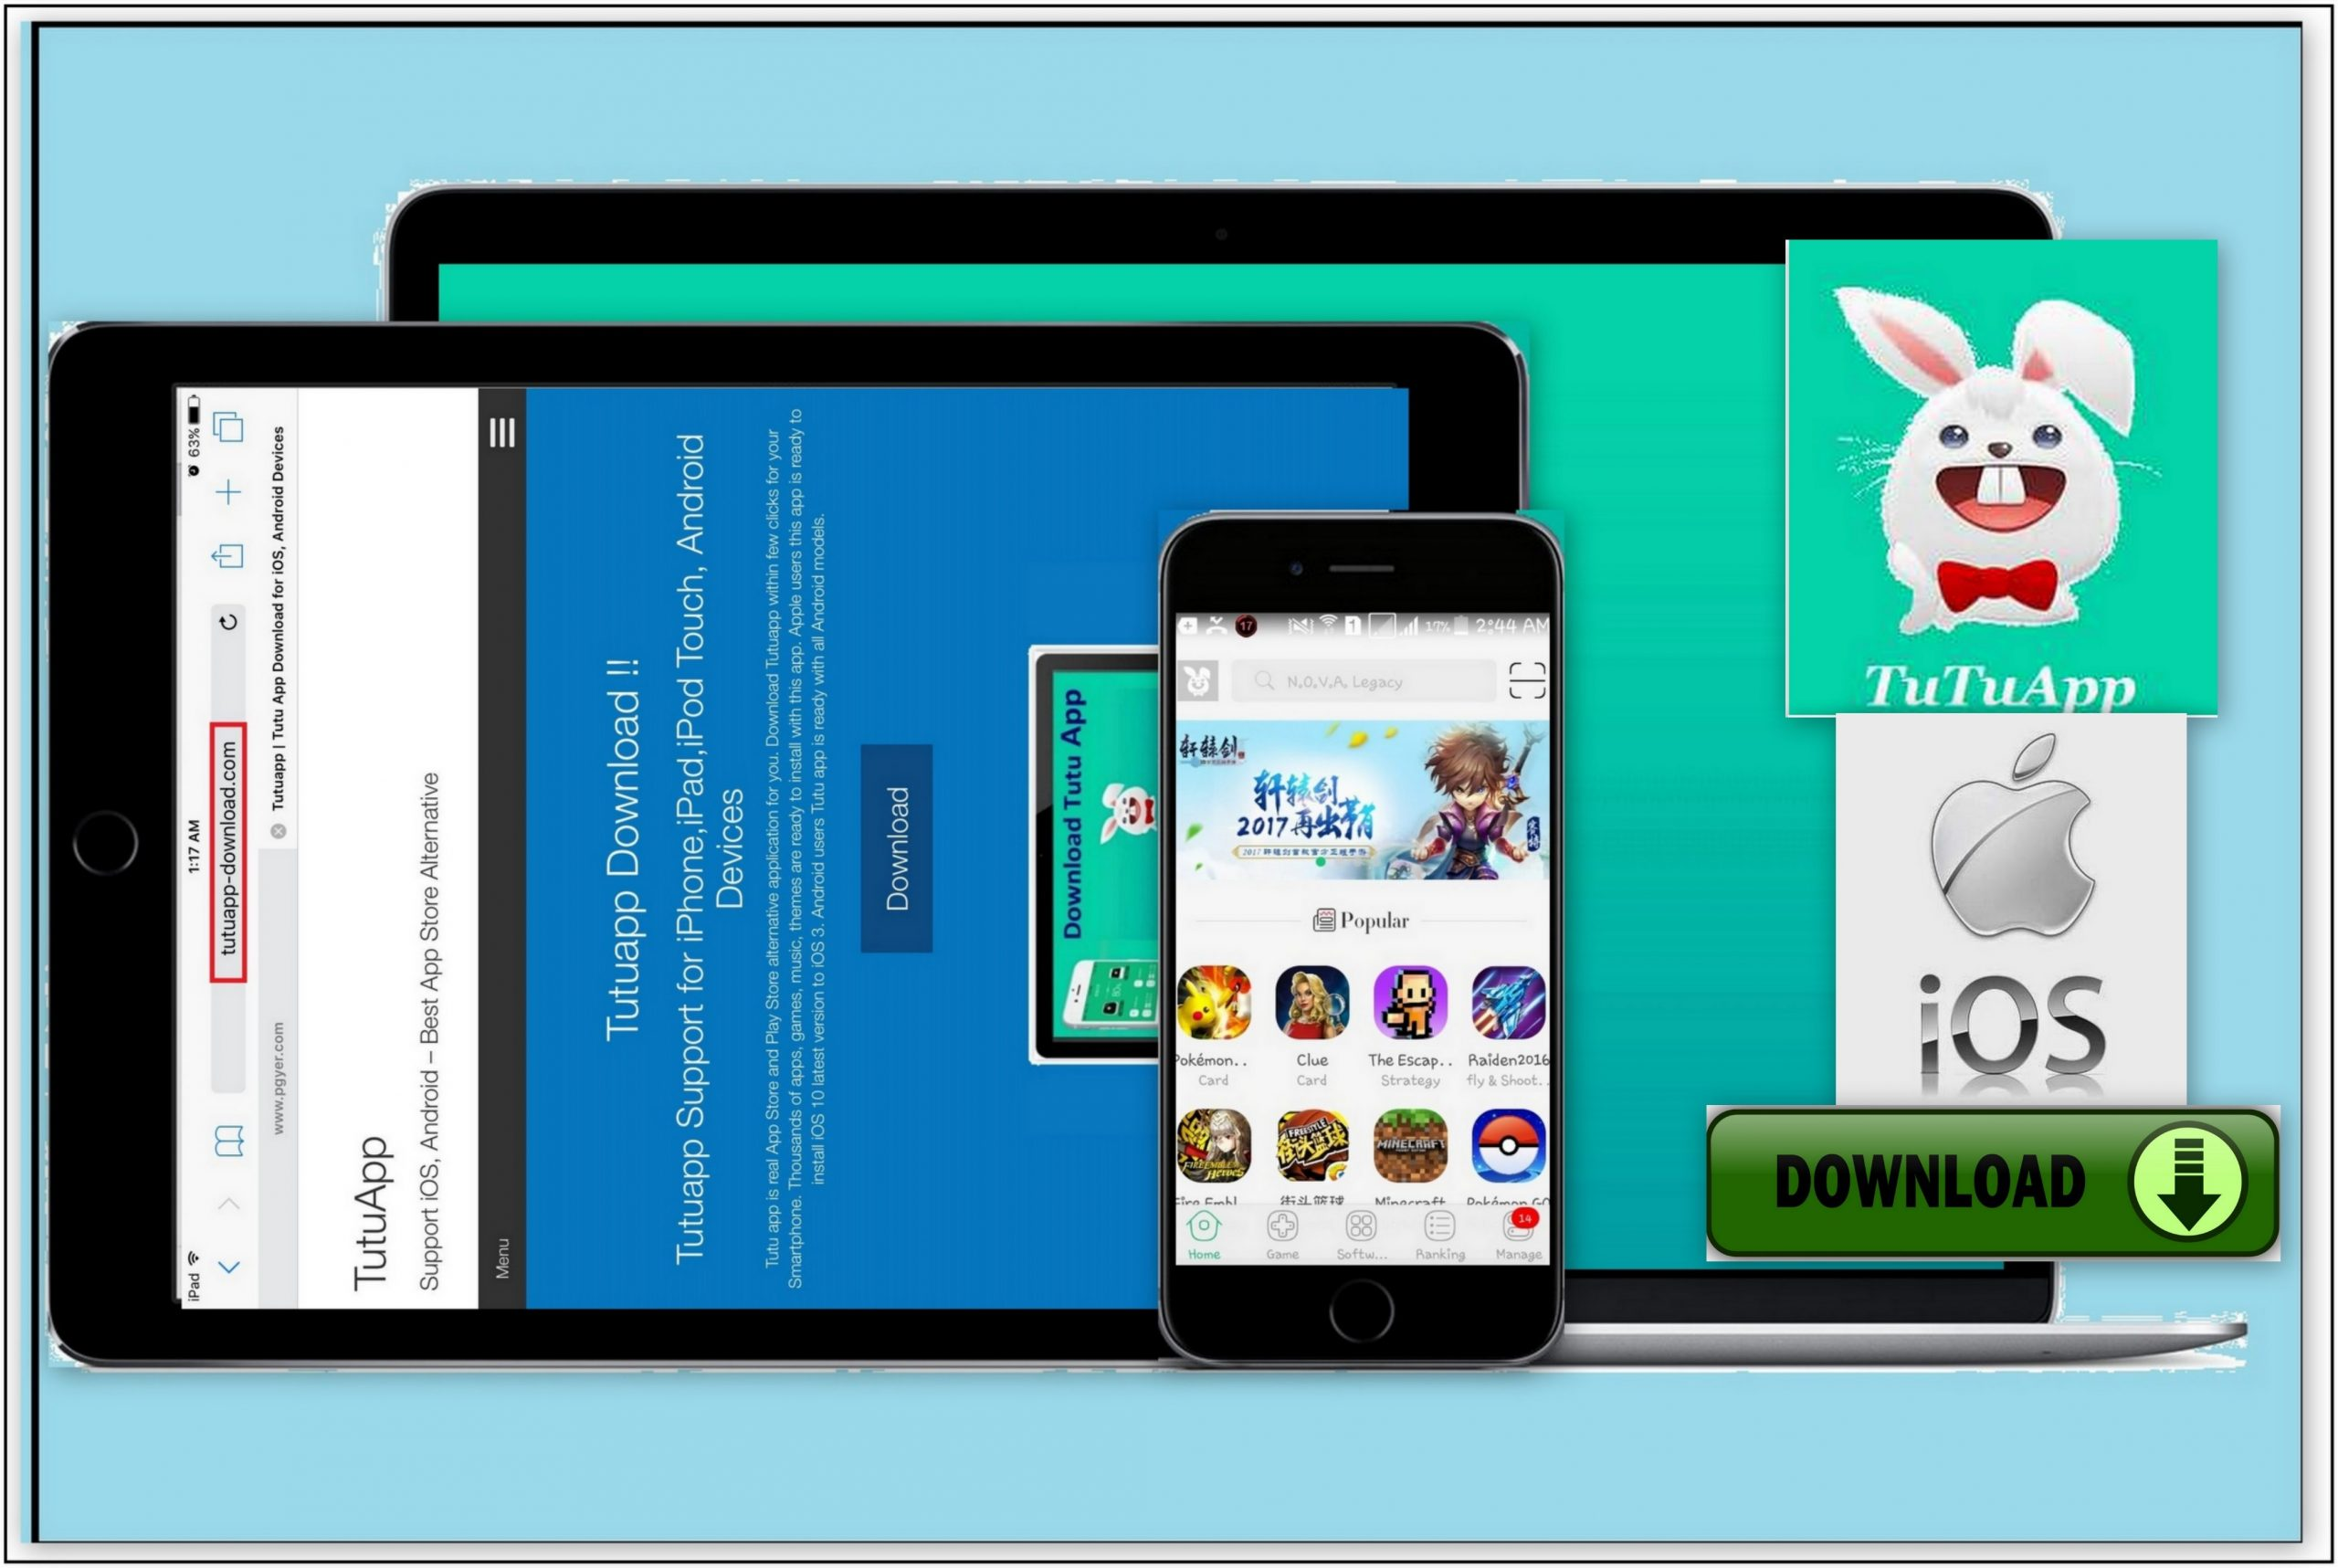 How to Download TutuApp Helper for iPhone, iPad, iPod Touch.